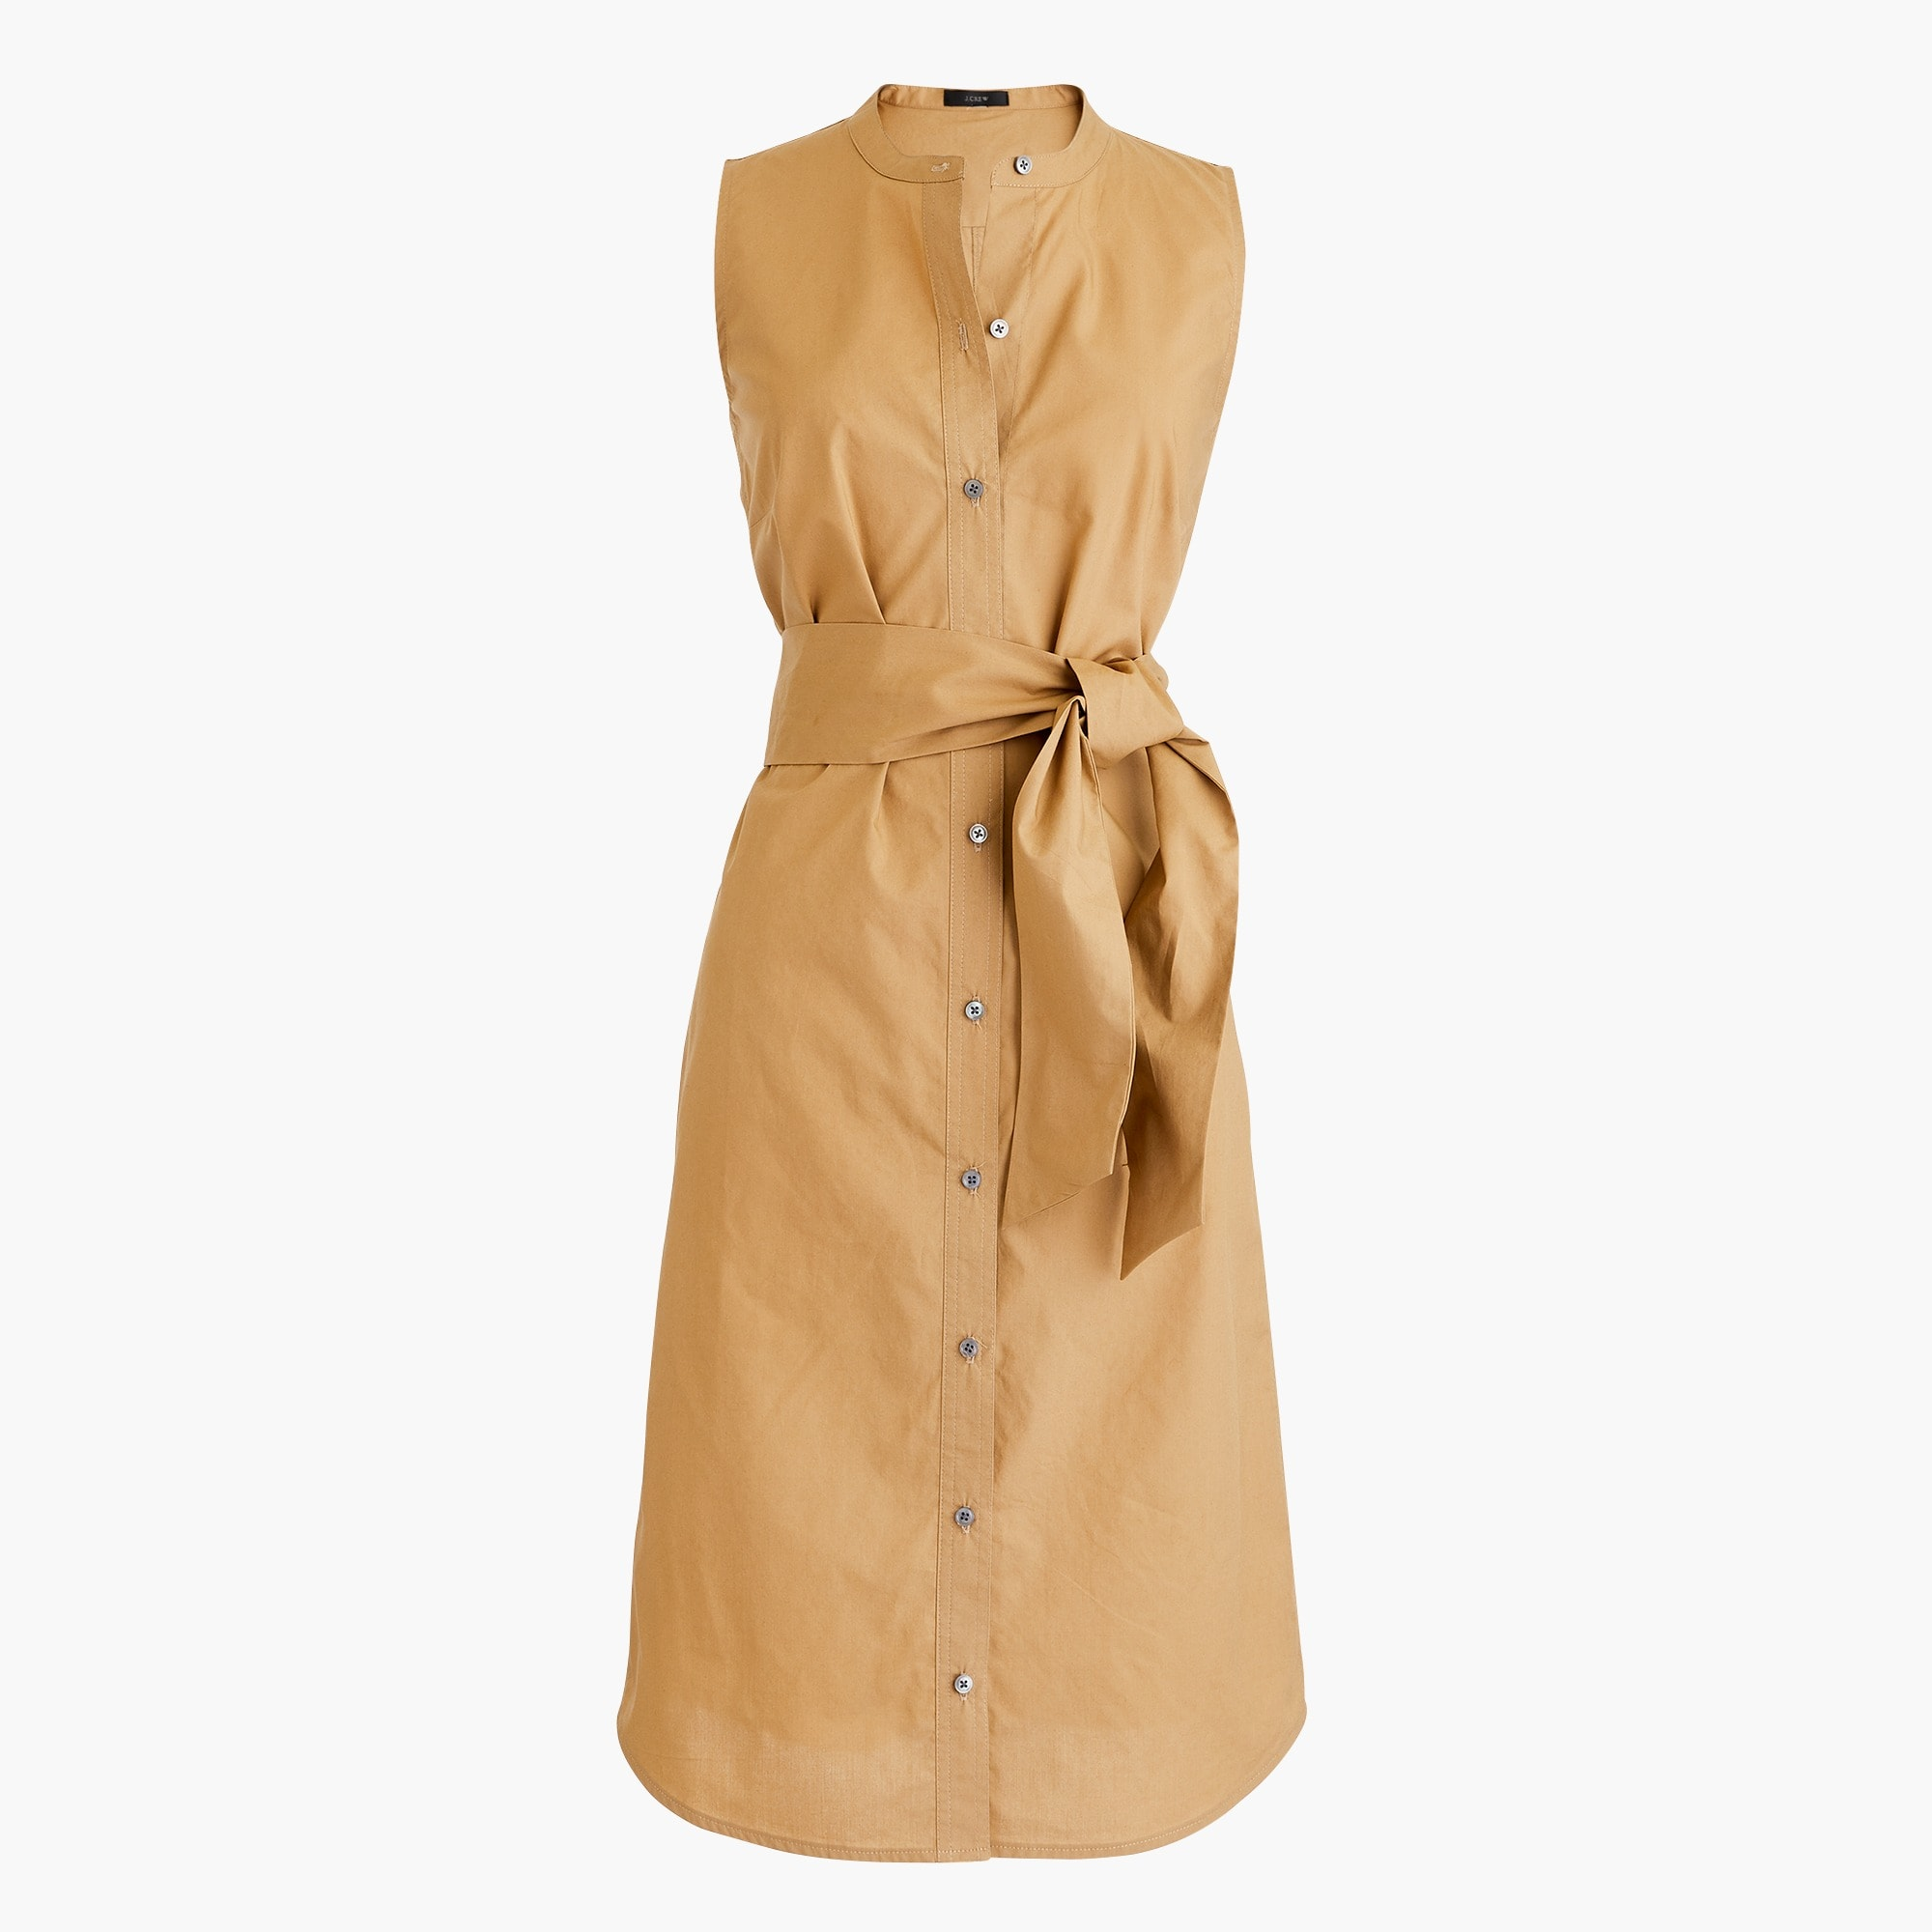 Sleeveless shirtdress in cotton poplin